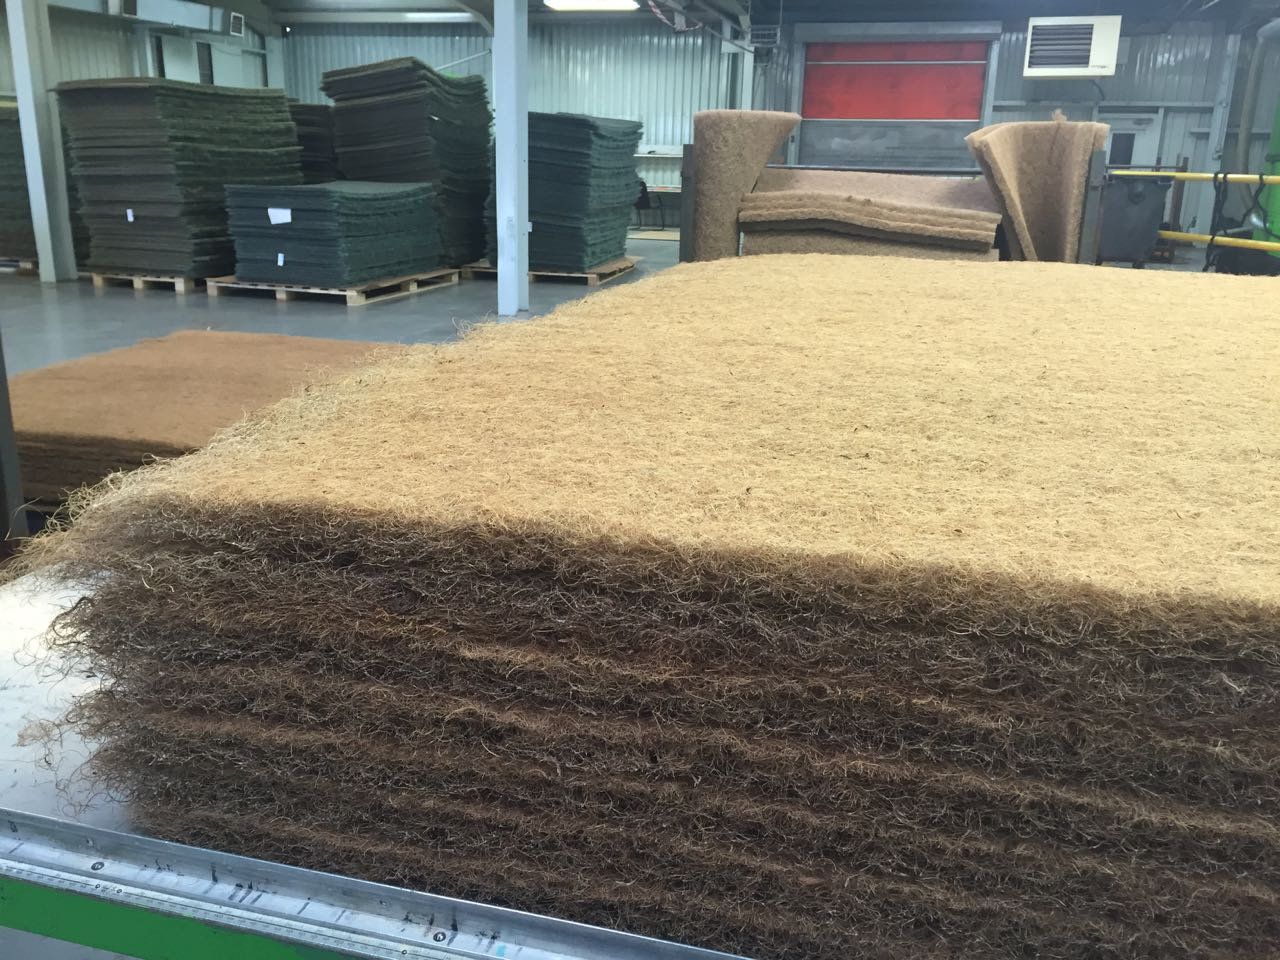 This is then unrolled and turned into high loft pads of fibre